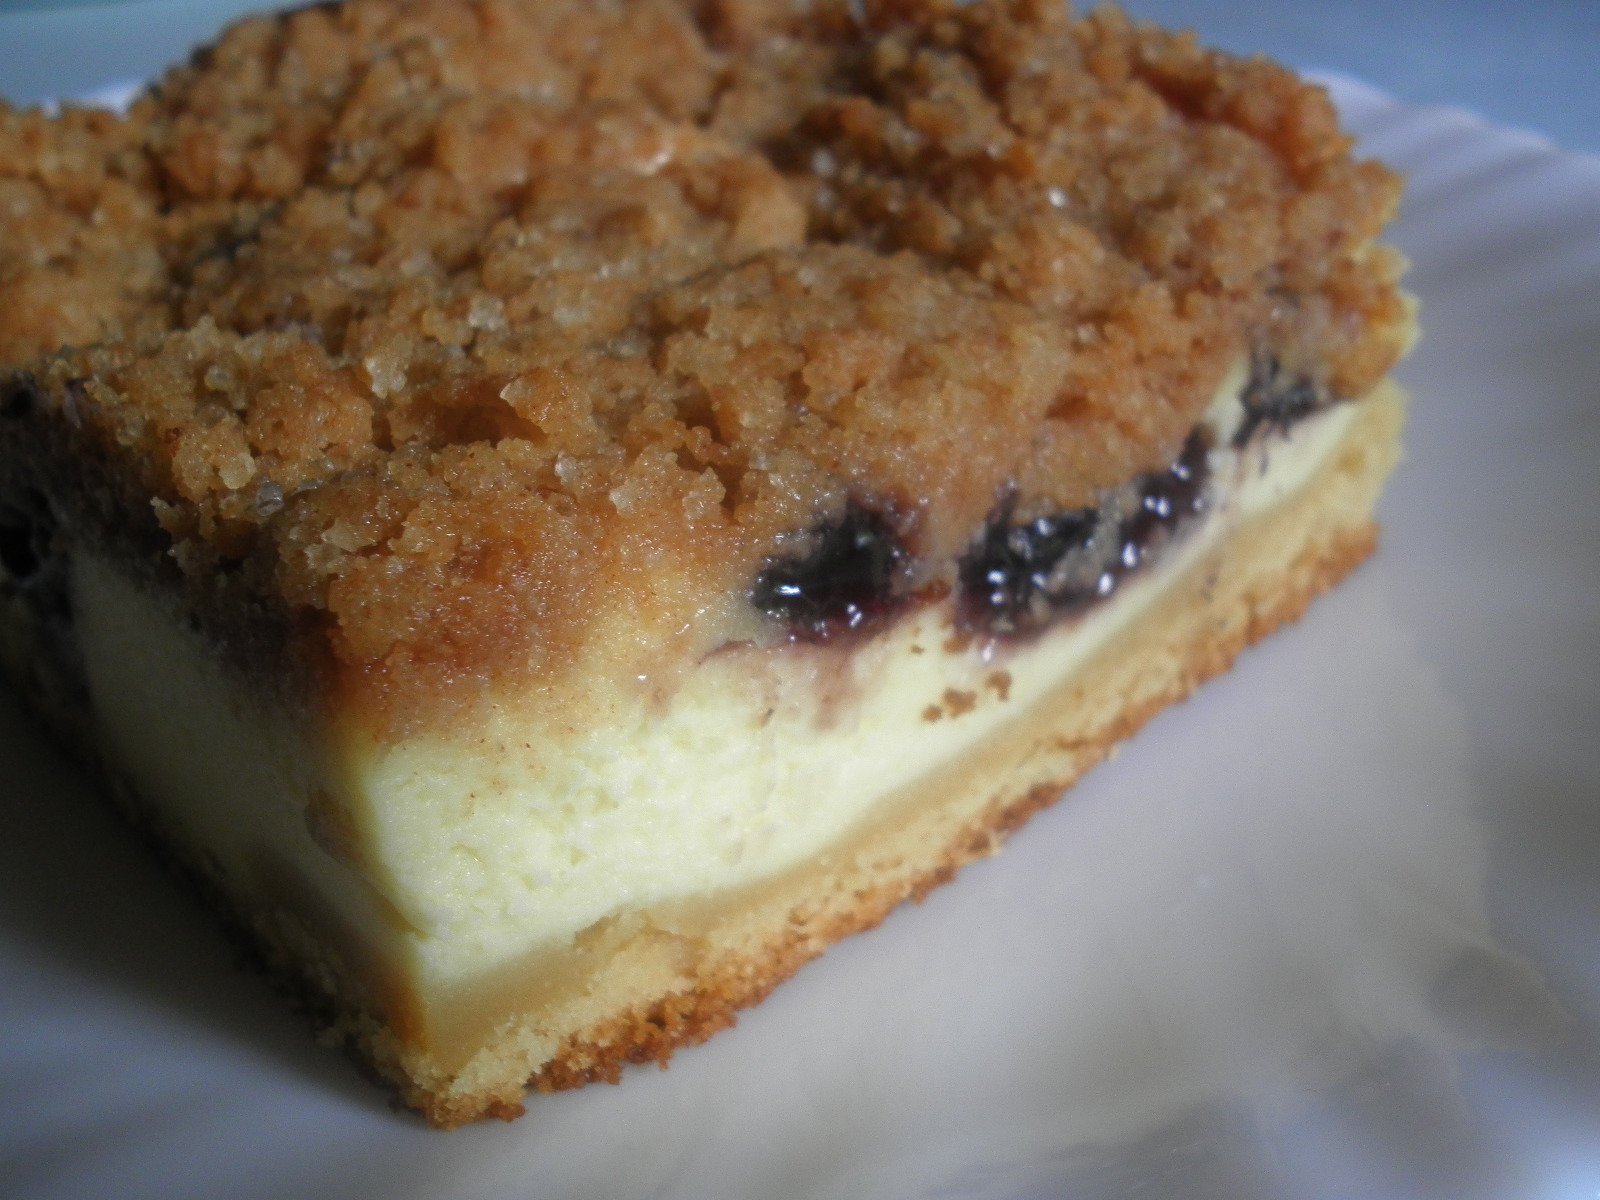 Every Little Crumb: Blueberry Cream Cheese Coffee Cake